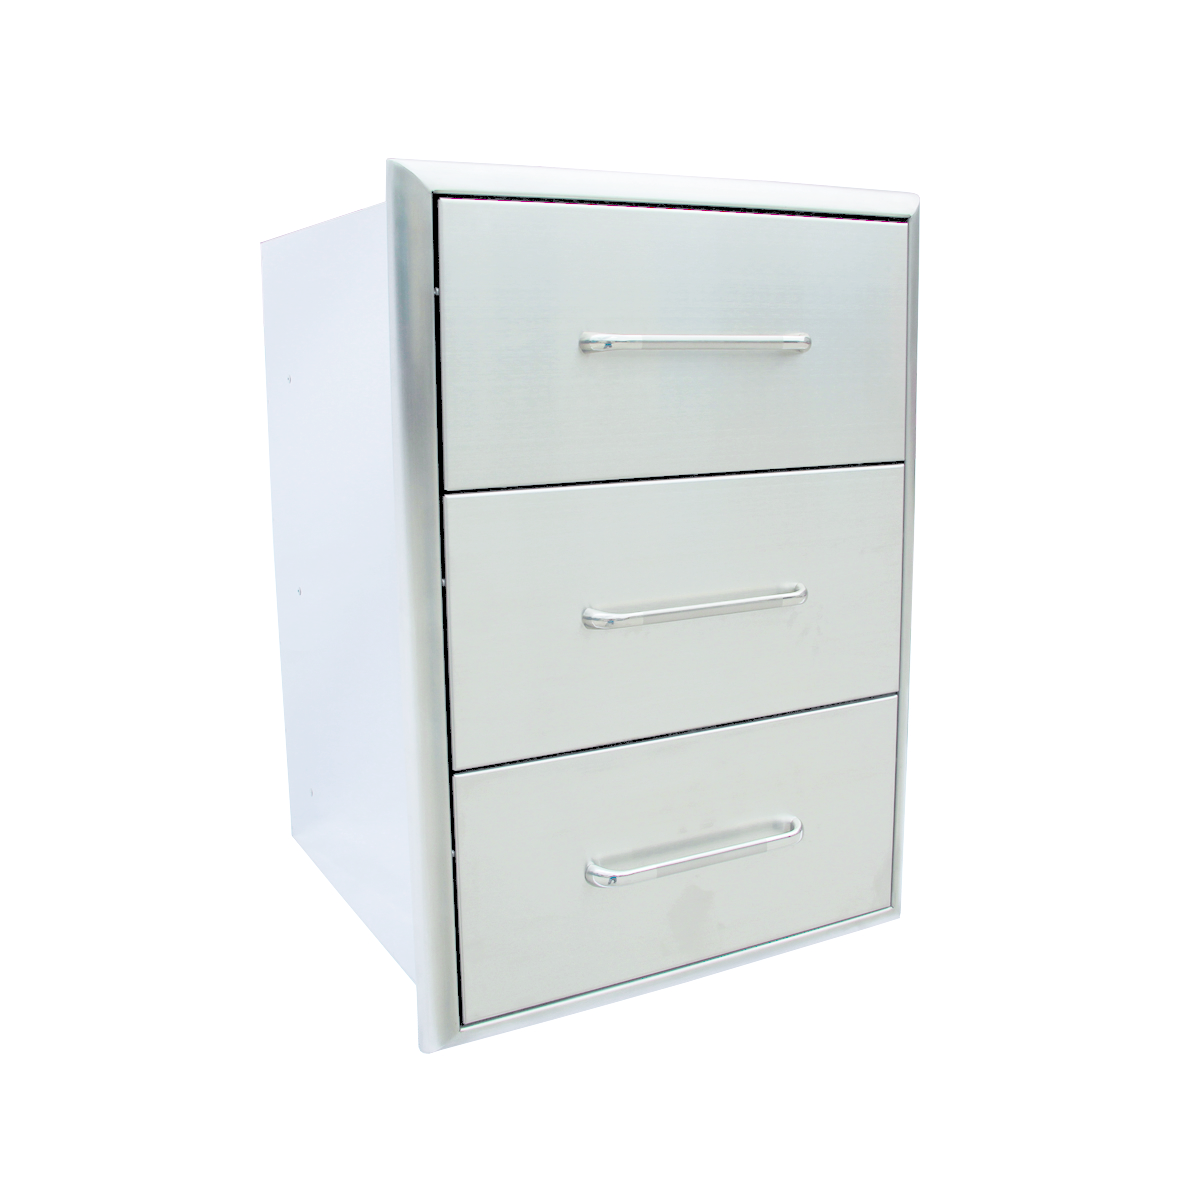 new_LW_triple_drawer_cabinet_1818__54690.1435748671.1280.1280